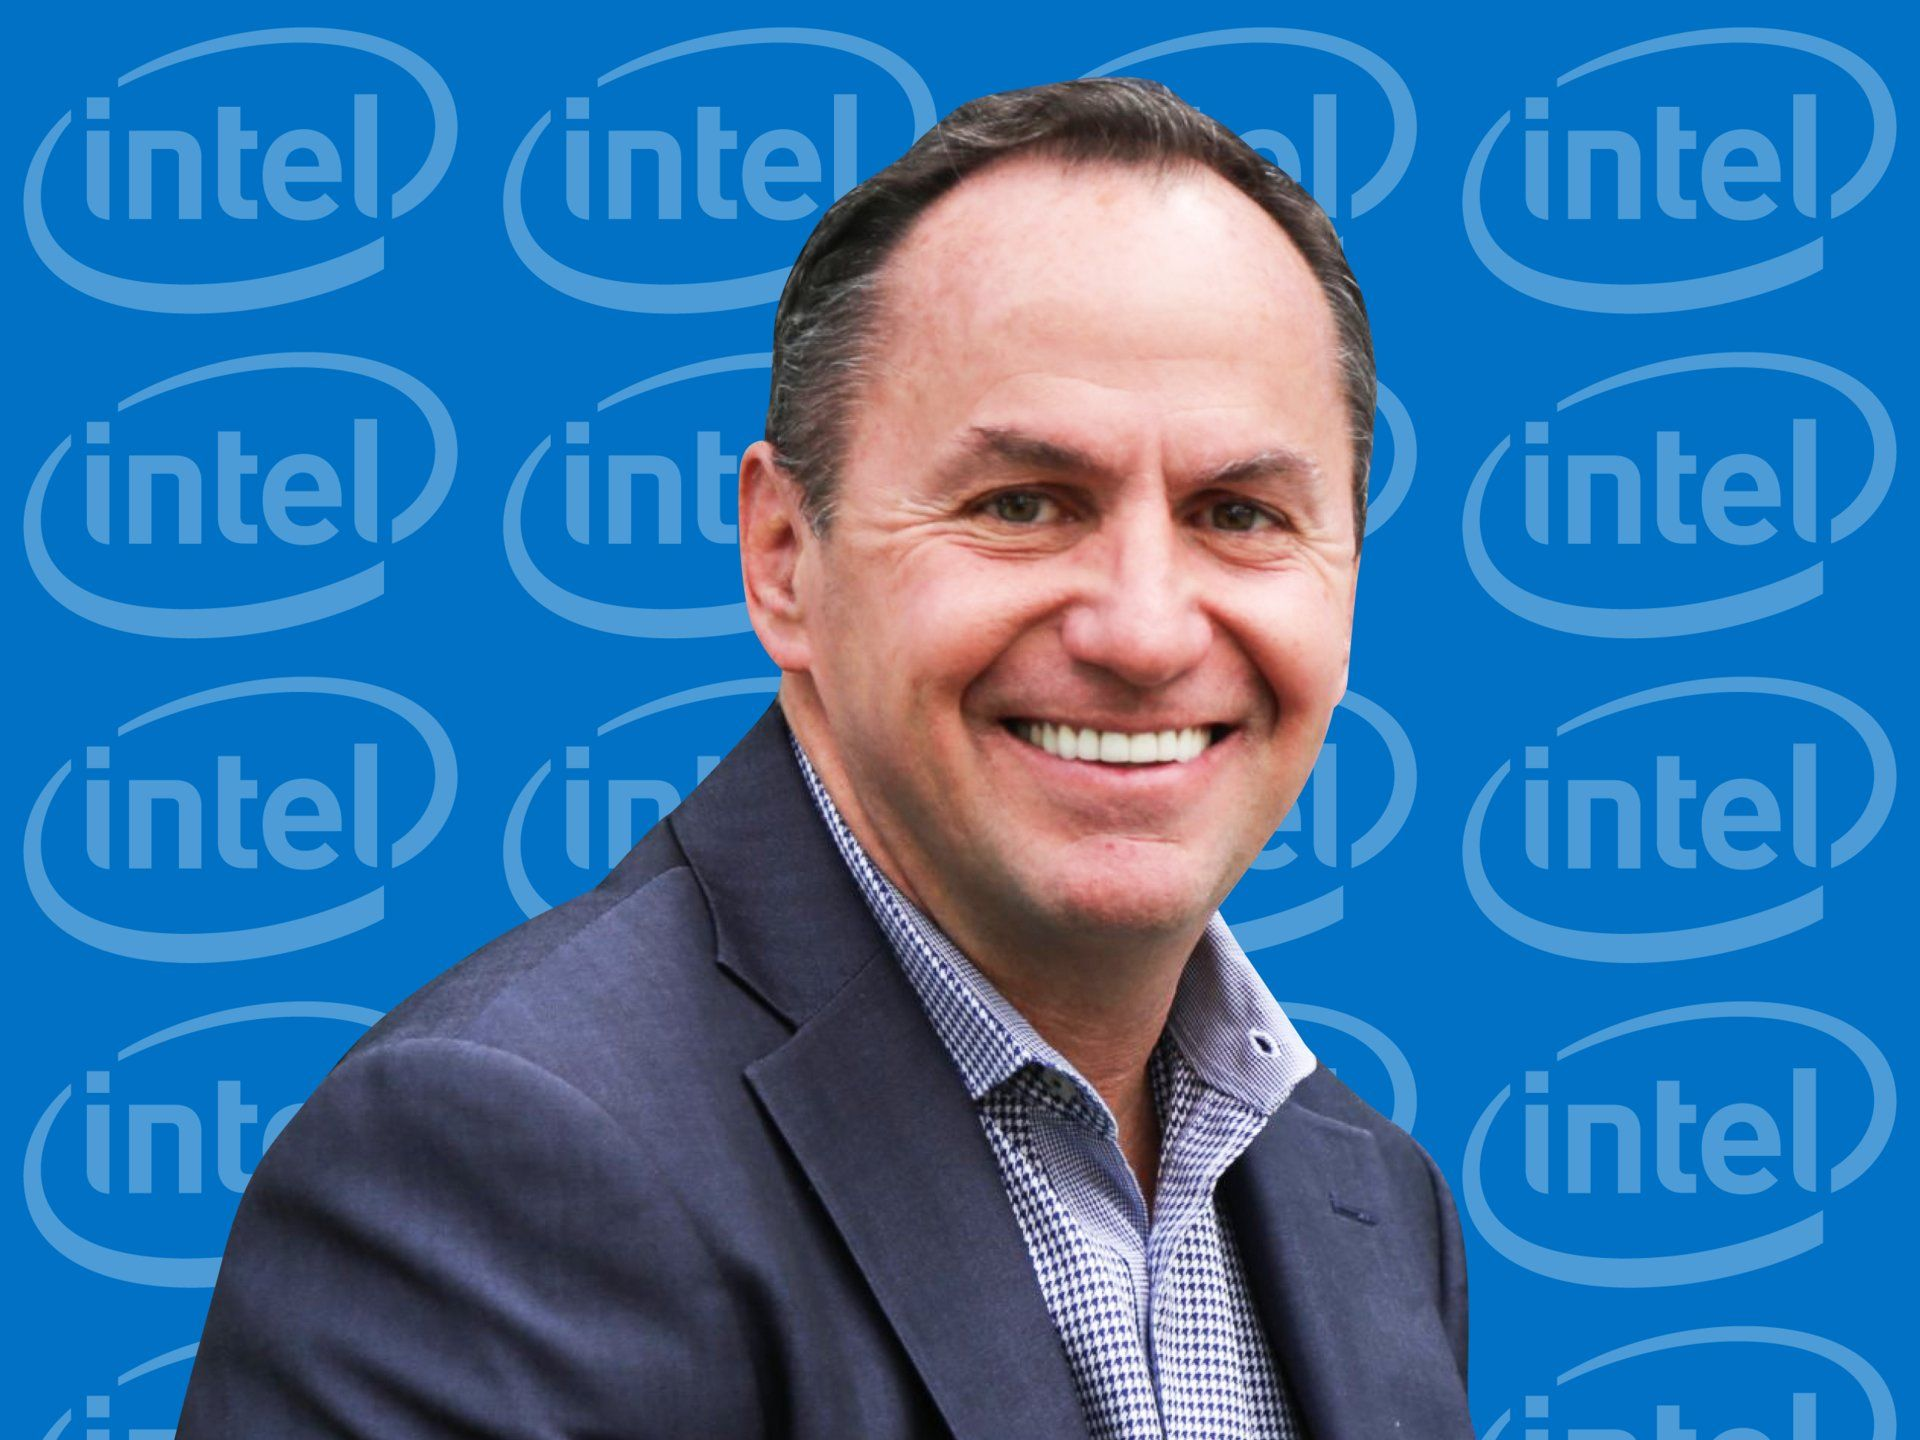 During a conference presentation, Intel CEO blamed company's focus on having 90% CPU marketshare for missing opportunities, explained 10nm CPU delays, and more (Usman Pirzada/Wccftech)